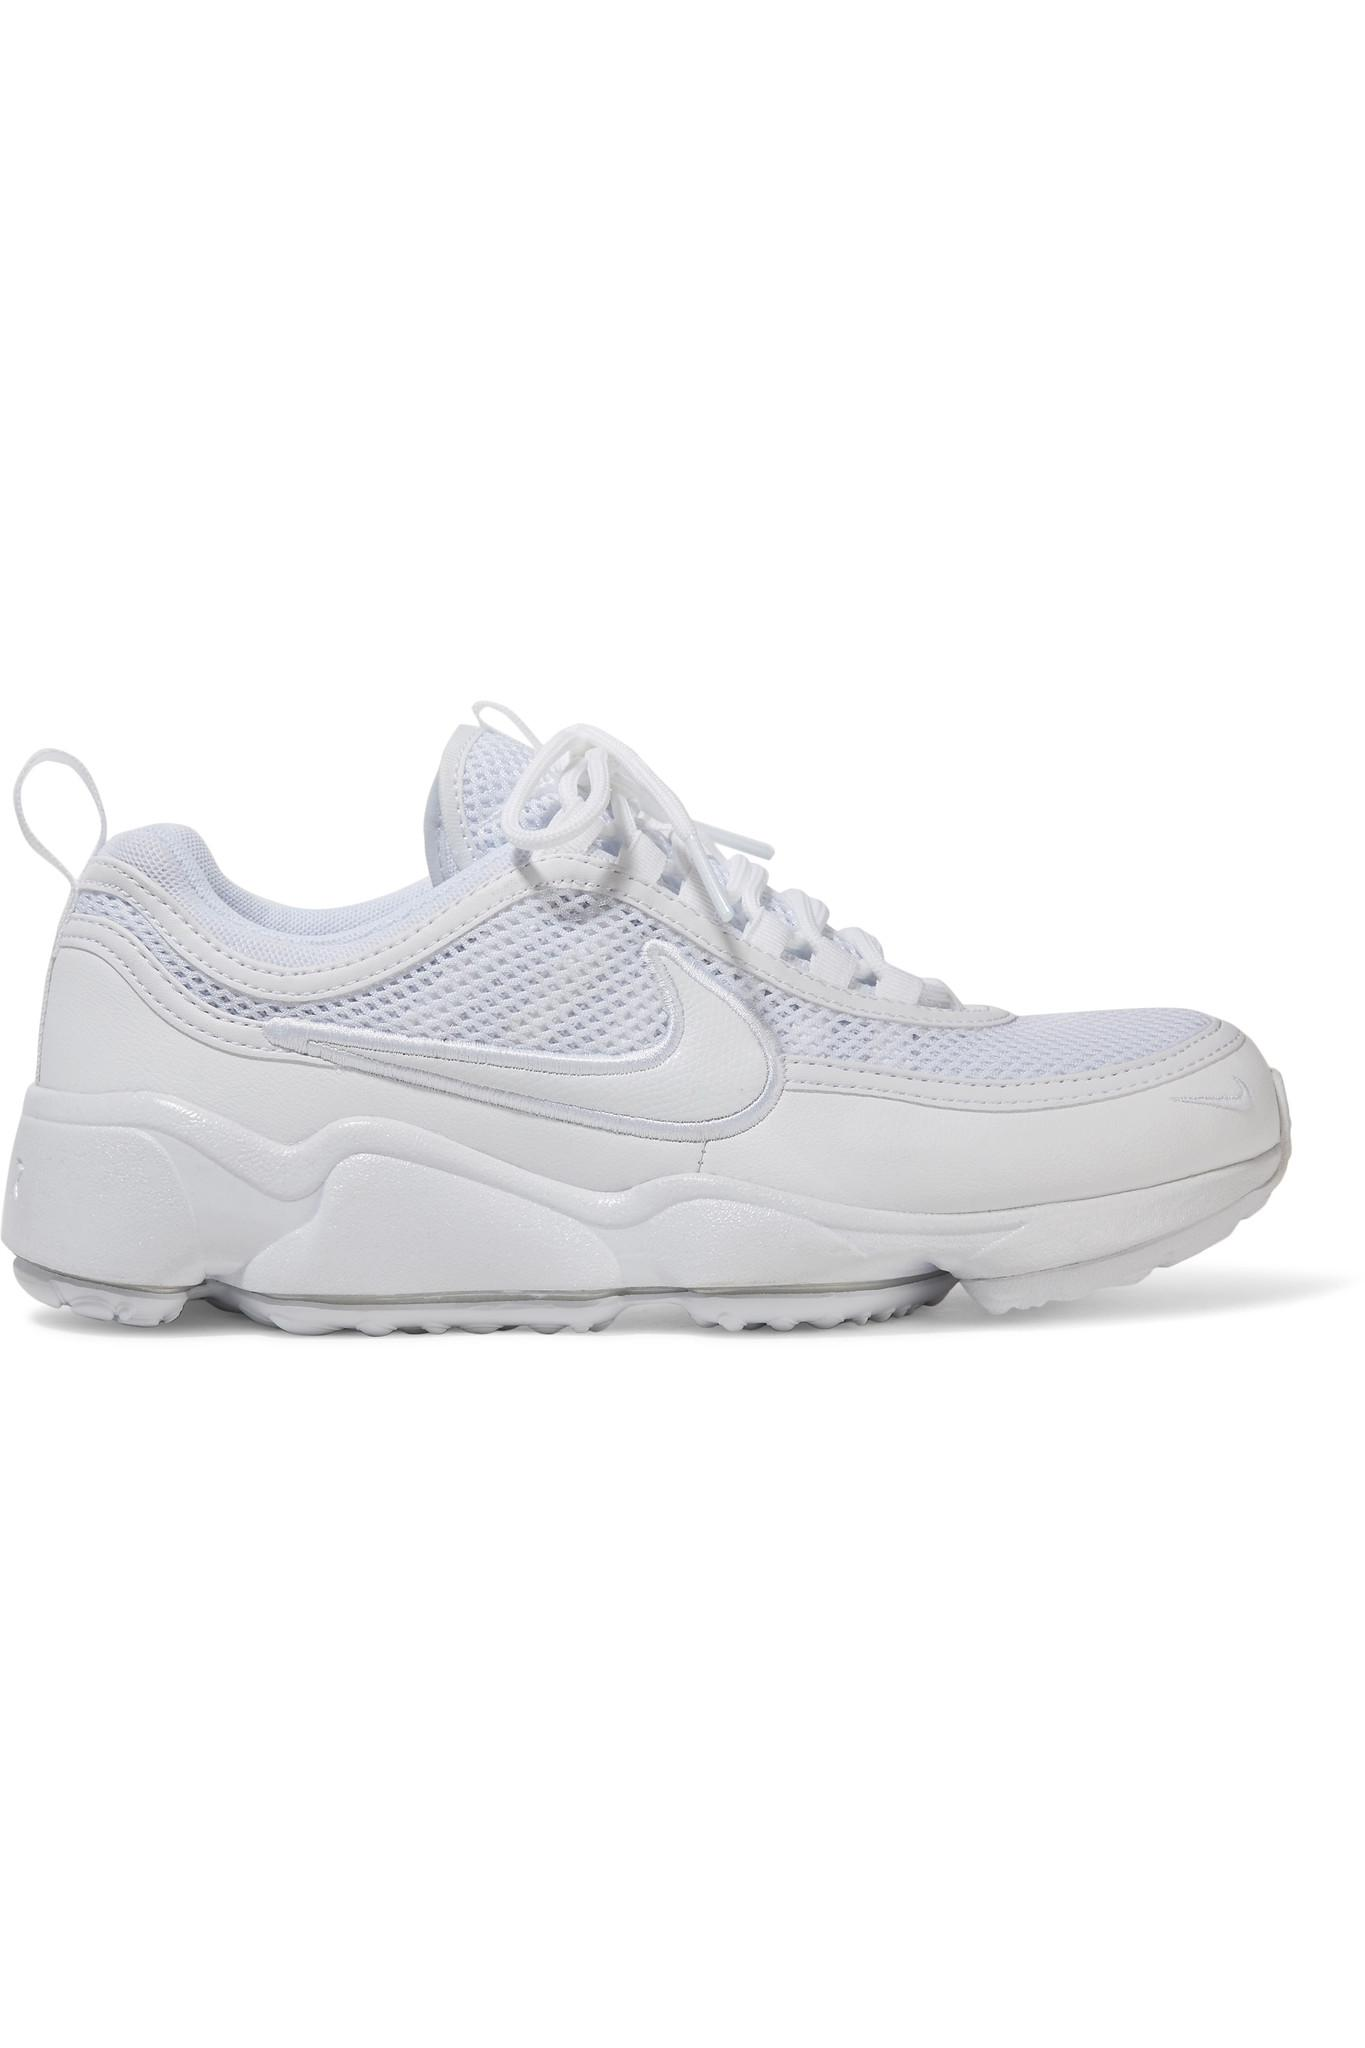 85009153d483c Lyst - Nike Air Zoom Spiridon Ultra Leather And Mesh Sneakers in White